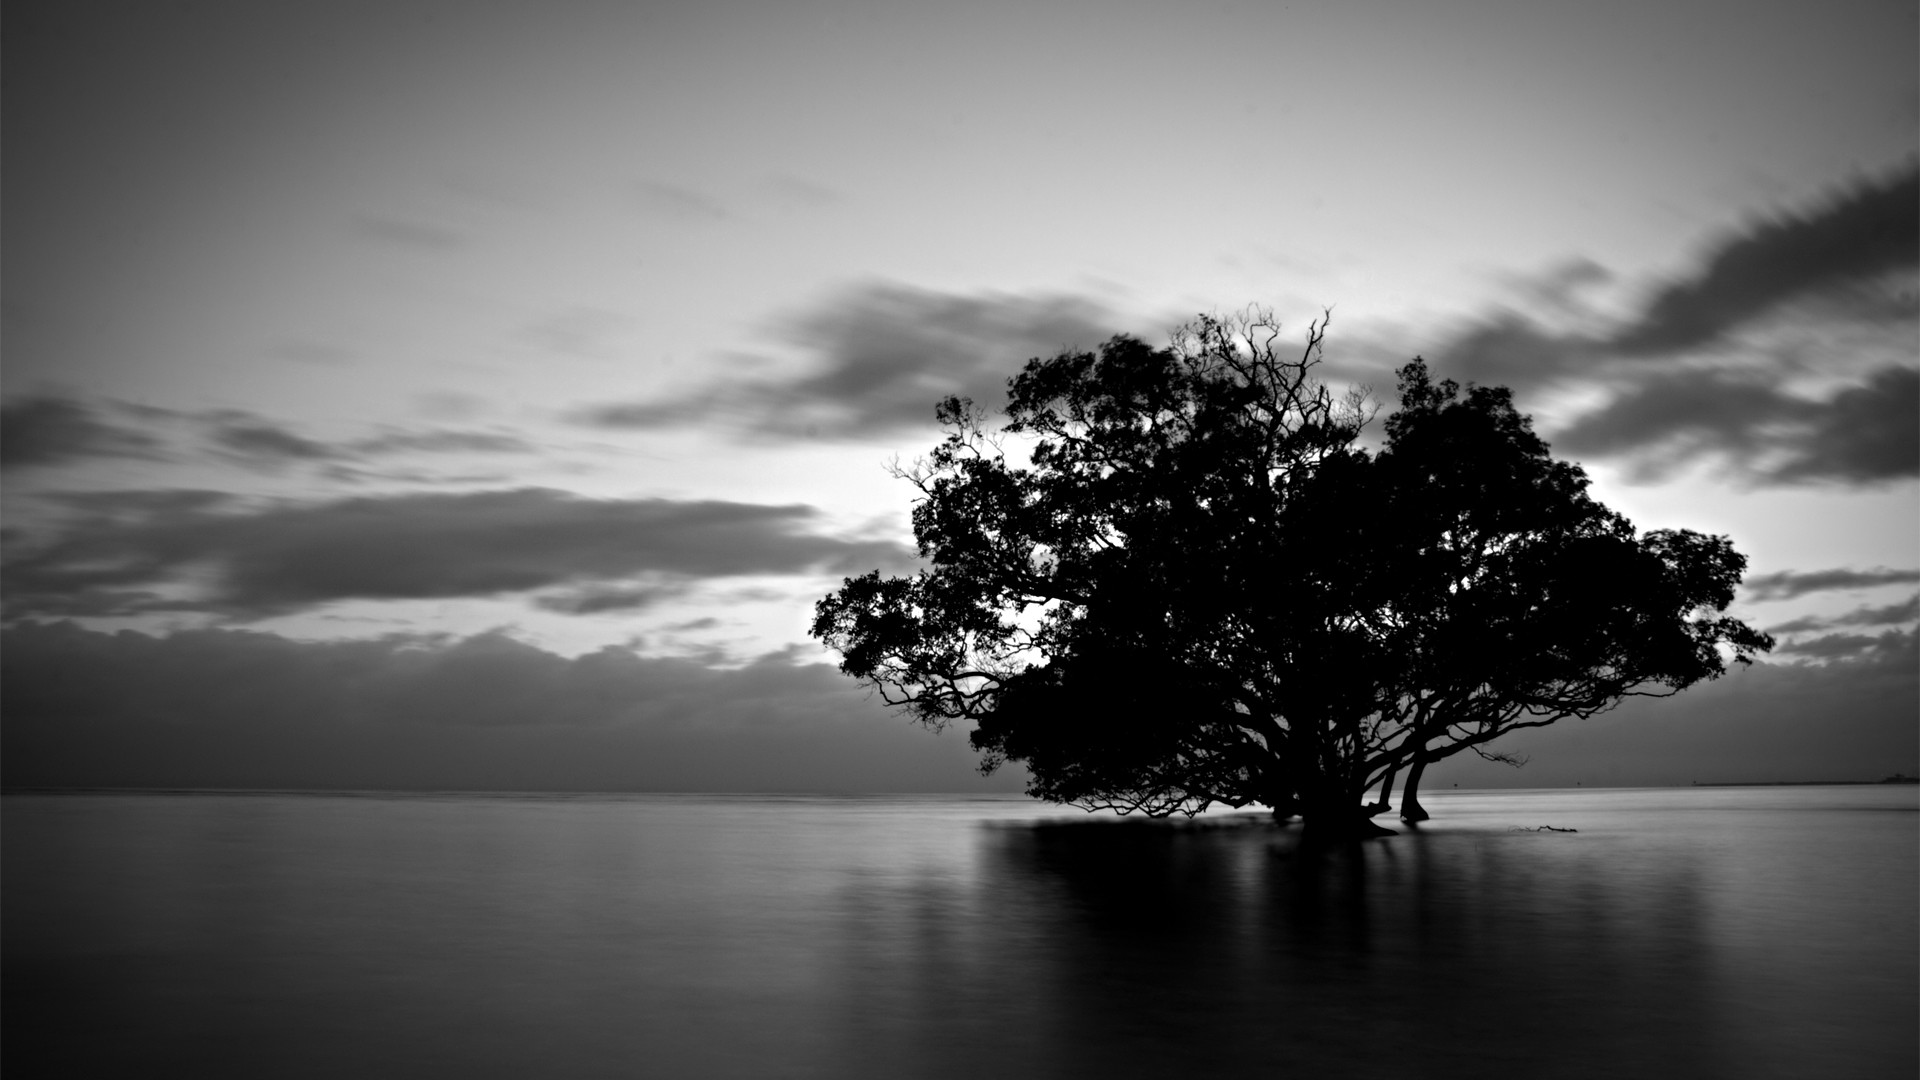 Black And White Nature Photography Hd Background Wallpaper 18 HD Wallpapers